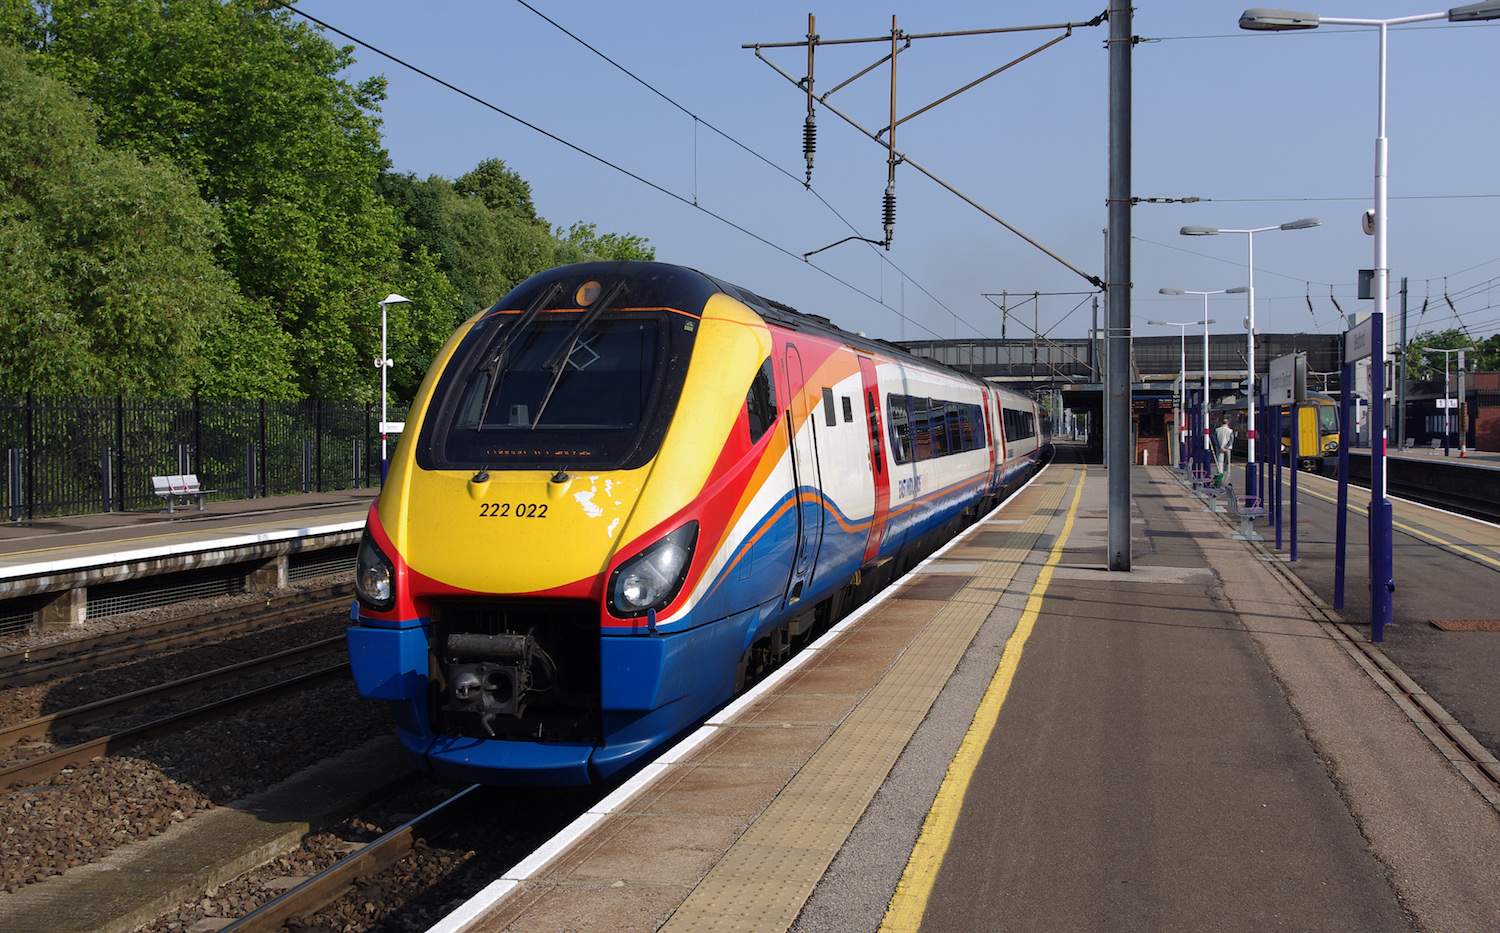 East Midlands Trains at Bedford from May 2018 – An Analysis